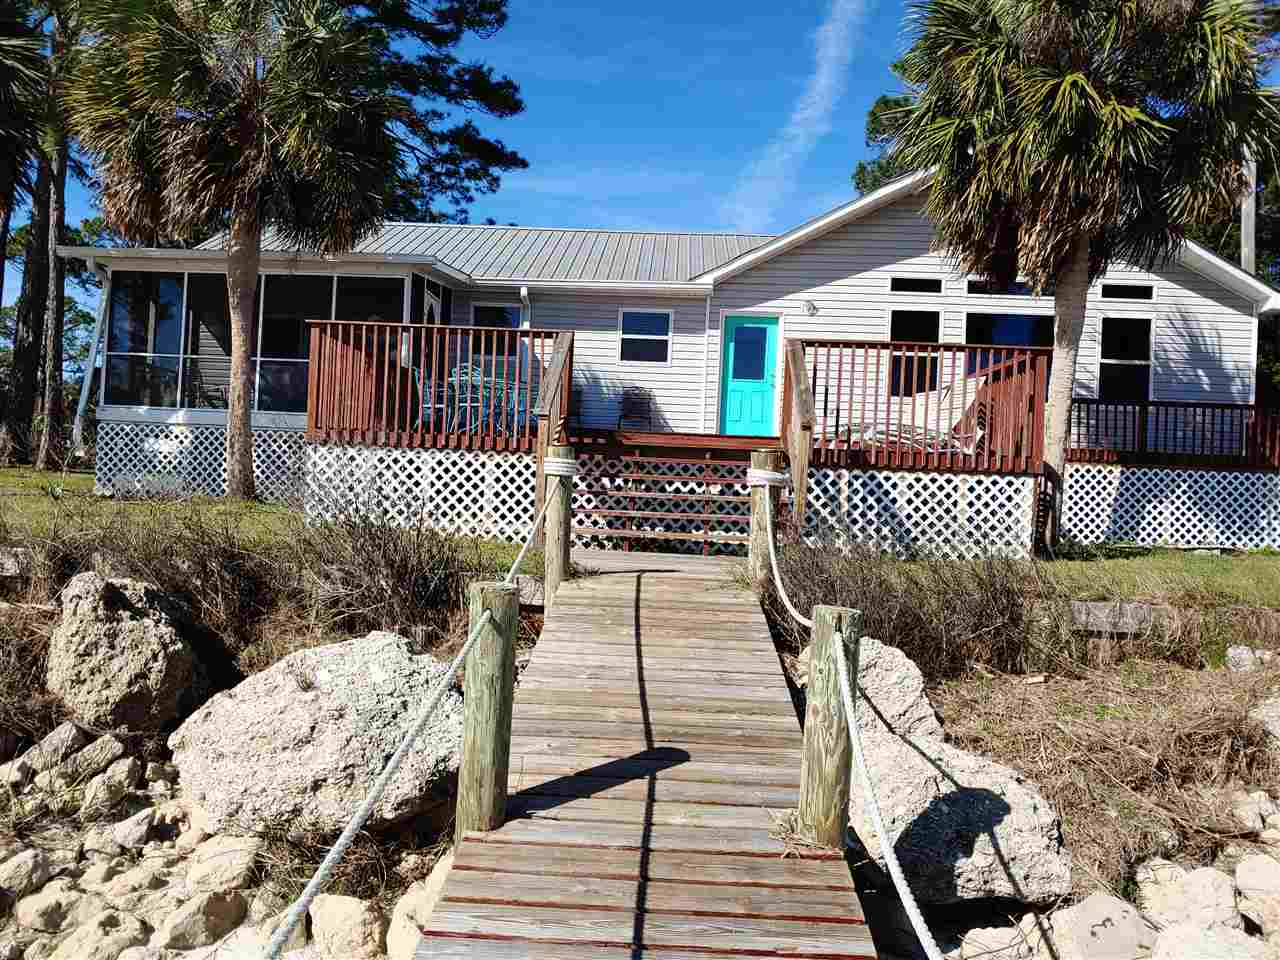 Back-up Offers Welcome - Below Appraisal - This sweet bay front cottage is located on Hwy 98 E in the quaint fishing community of Lanark and has a newly repaired dock and boat lift, great views of Bird Island, Lanark Reef and Dog Island.  The open concept and huge kitchen make it perfect for large gatherings of friends and family and boasts an over-sized kitchen island (3'x8'). There are reclaimed barnwood floors throughout the main living area, kitchen, hallway and master bedroom. The slightly white-washed knotty pine tongue and groove walls and ceiling give this cottage a comfy rustic beachy feel.  There is a large pantry and laundry room. The large deck and screened porch overlook the white sandy beach, dock and boat lift.  The large master bathroom has a shower stall, new floor, tile and toilet. The guest bath has a shower/tub, new floor, tile and toilet.  There are high vanities in both baths. The sliding door in the master bedroom has recently been replaced with an impact glass window.  The cottage has easy to care for vinyl siding, stand in seam metal roof, a separate cinder block garage with new door and opener and a new metal covered boat storage unit.  The sea wall is in good shape and no repairs were needed after hurricane Michael.  There was only minor damage done to the home which as been repaired.  The dock and boat lift suffered minor damage which have been repaired. The piers under the home were reinforced after the storm.